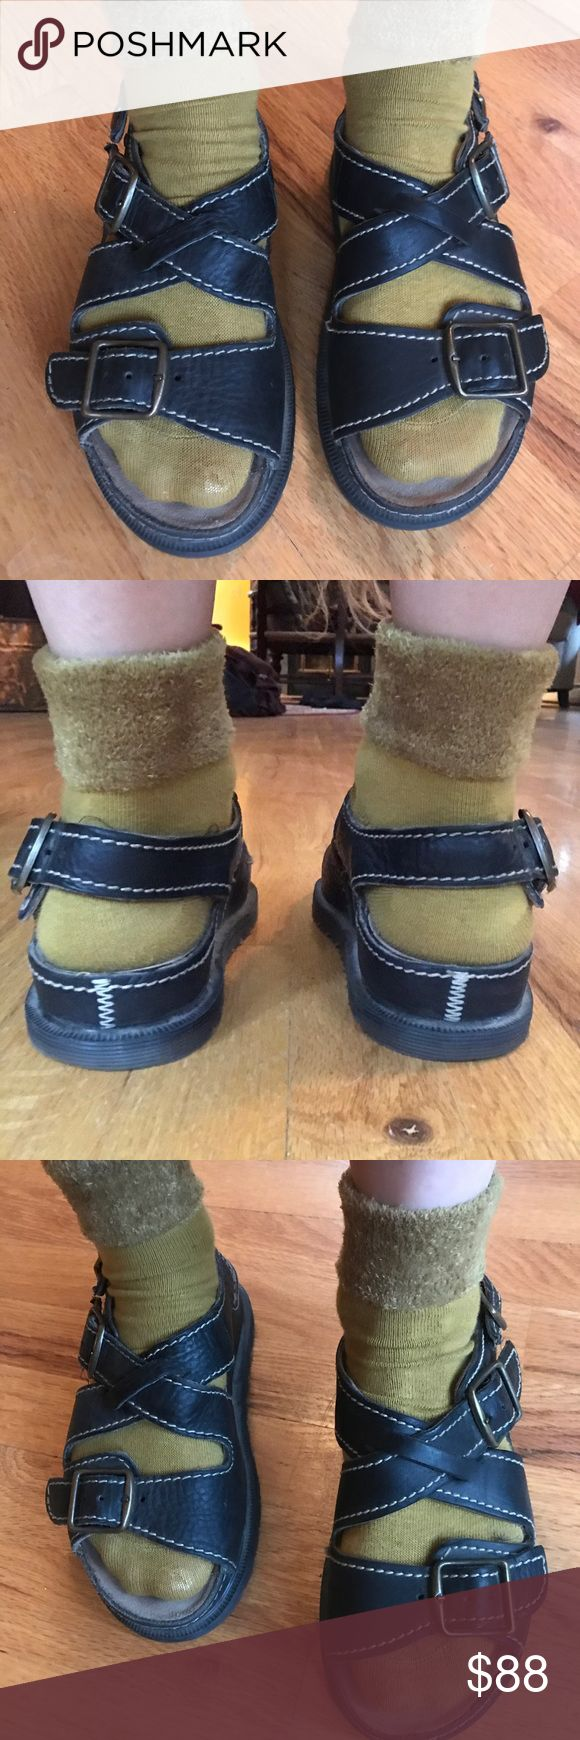 "Pair of Dr. Martens Sandals Made in UK UK 5/US 6 Pair of Vintage Dr. Martens Made in England for sale!!!  UK Size 5/ US Size 6.  In Excellent Shape!!!!  Footbed measures 9.5"" from toe to heel. Dr. Martens Shoes Sandals"